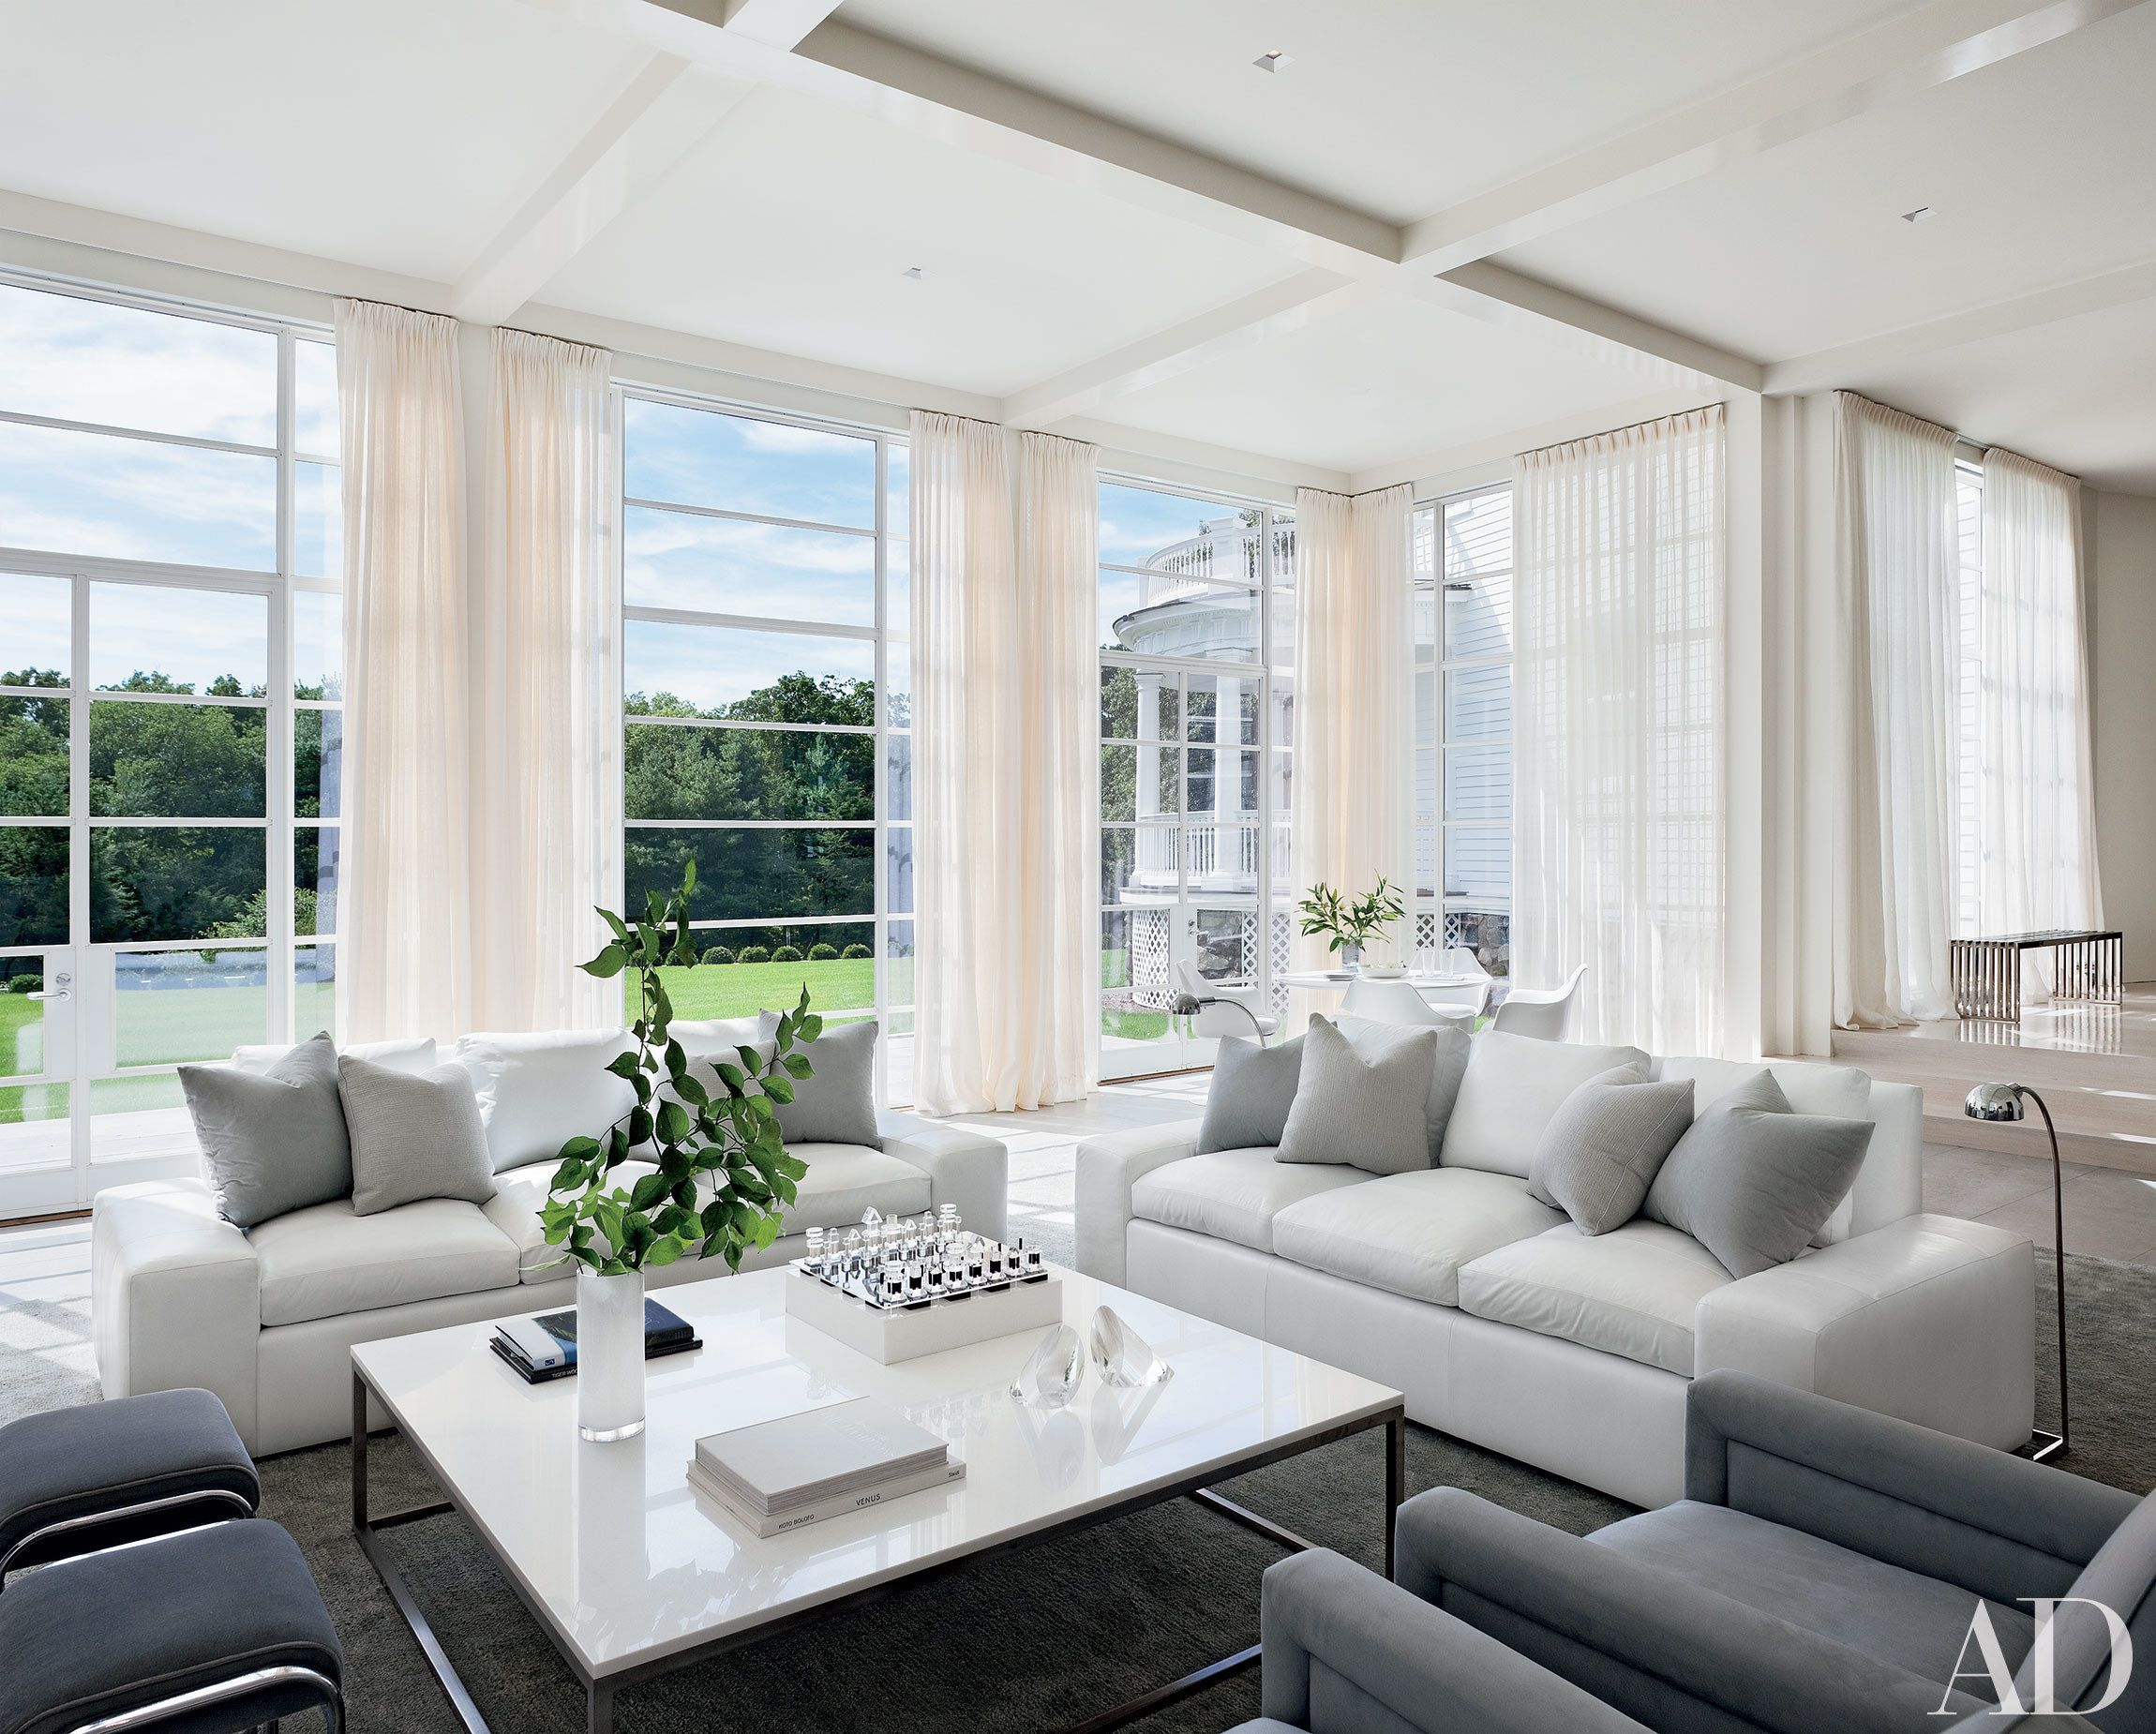 8 Refined Rooms By Victoria Hagan Interiors With Images Best